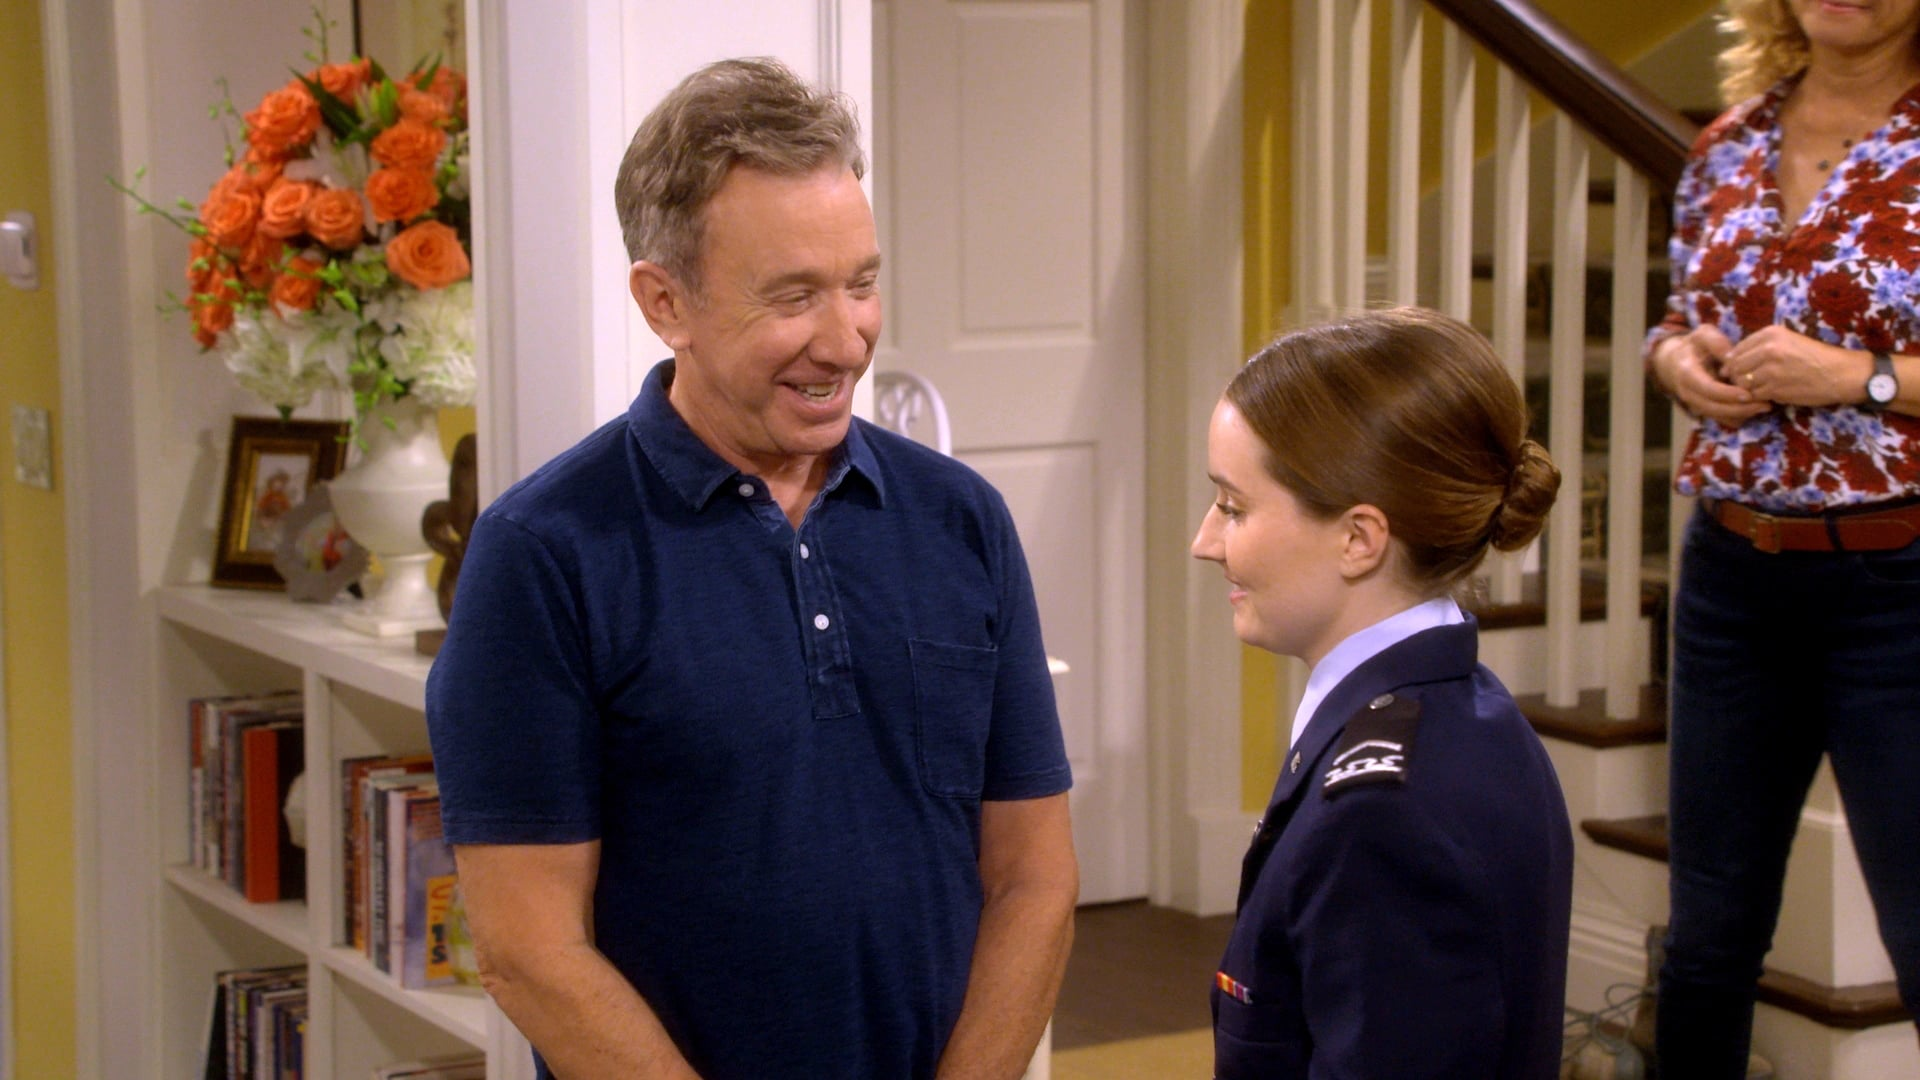 LAST MAN STANDING, Tim Allen, Kaitlyn Dever in 'Wecome Baxter', (Season 7, Episode 701, aired Septembr 28, 2018), ph: FOX / courtesy Everett Collection